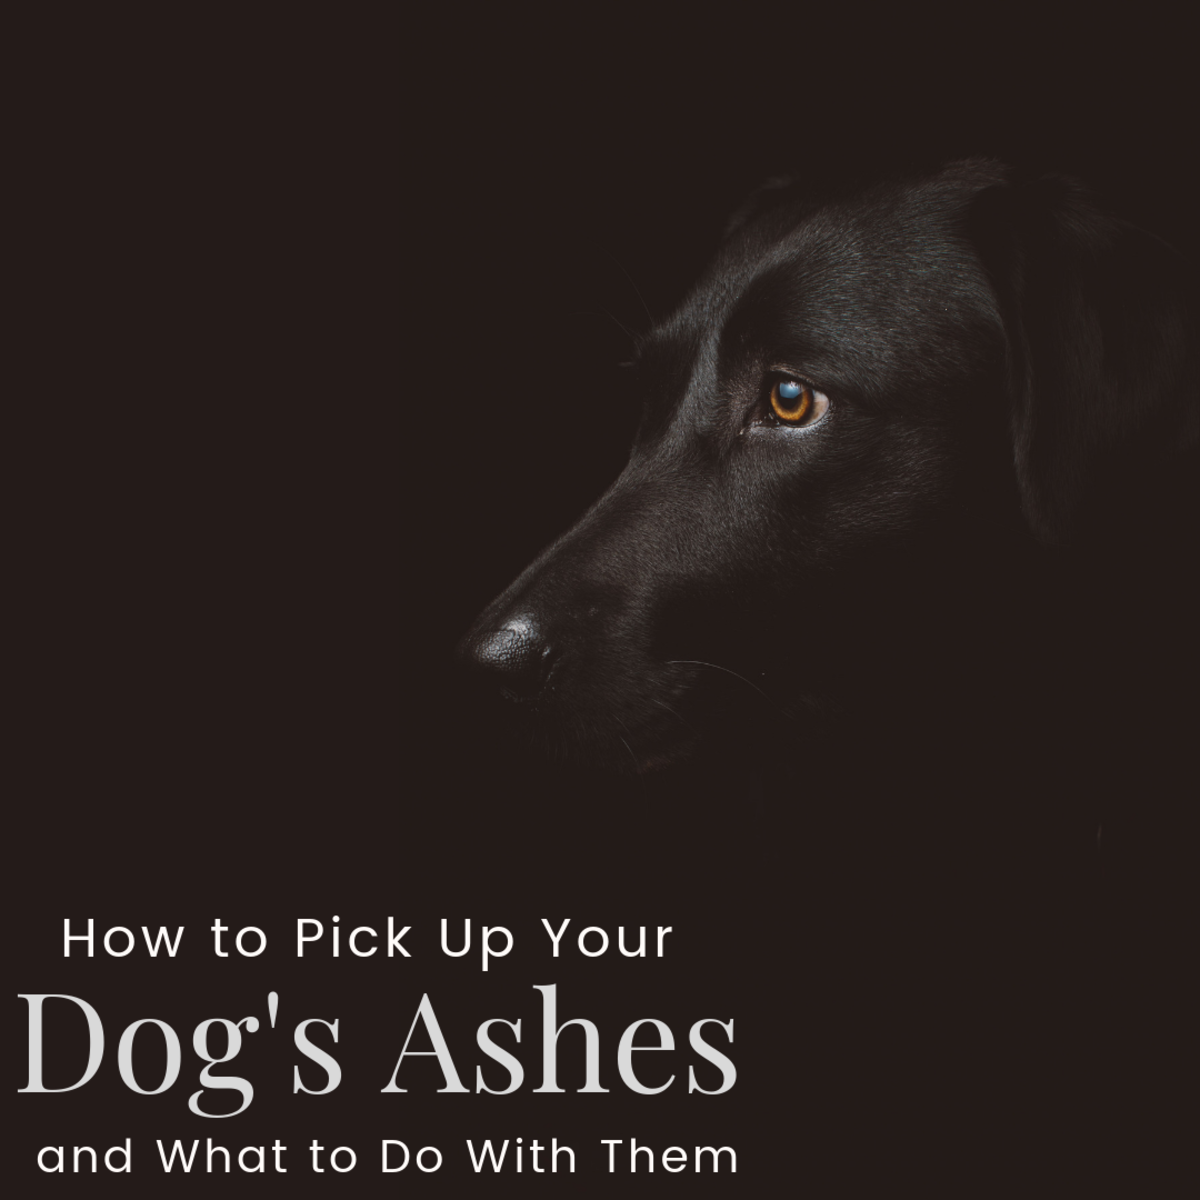 Picking up your beloved dog's ashes is a very difficult time. Here are a few ways to make the process a little easier.